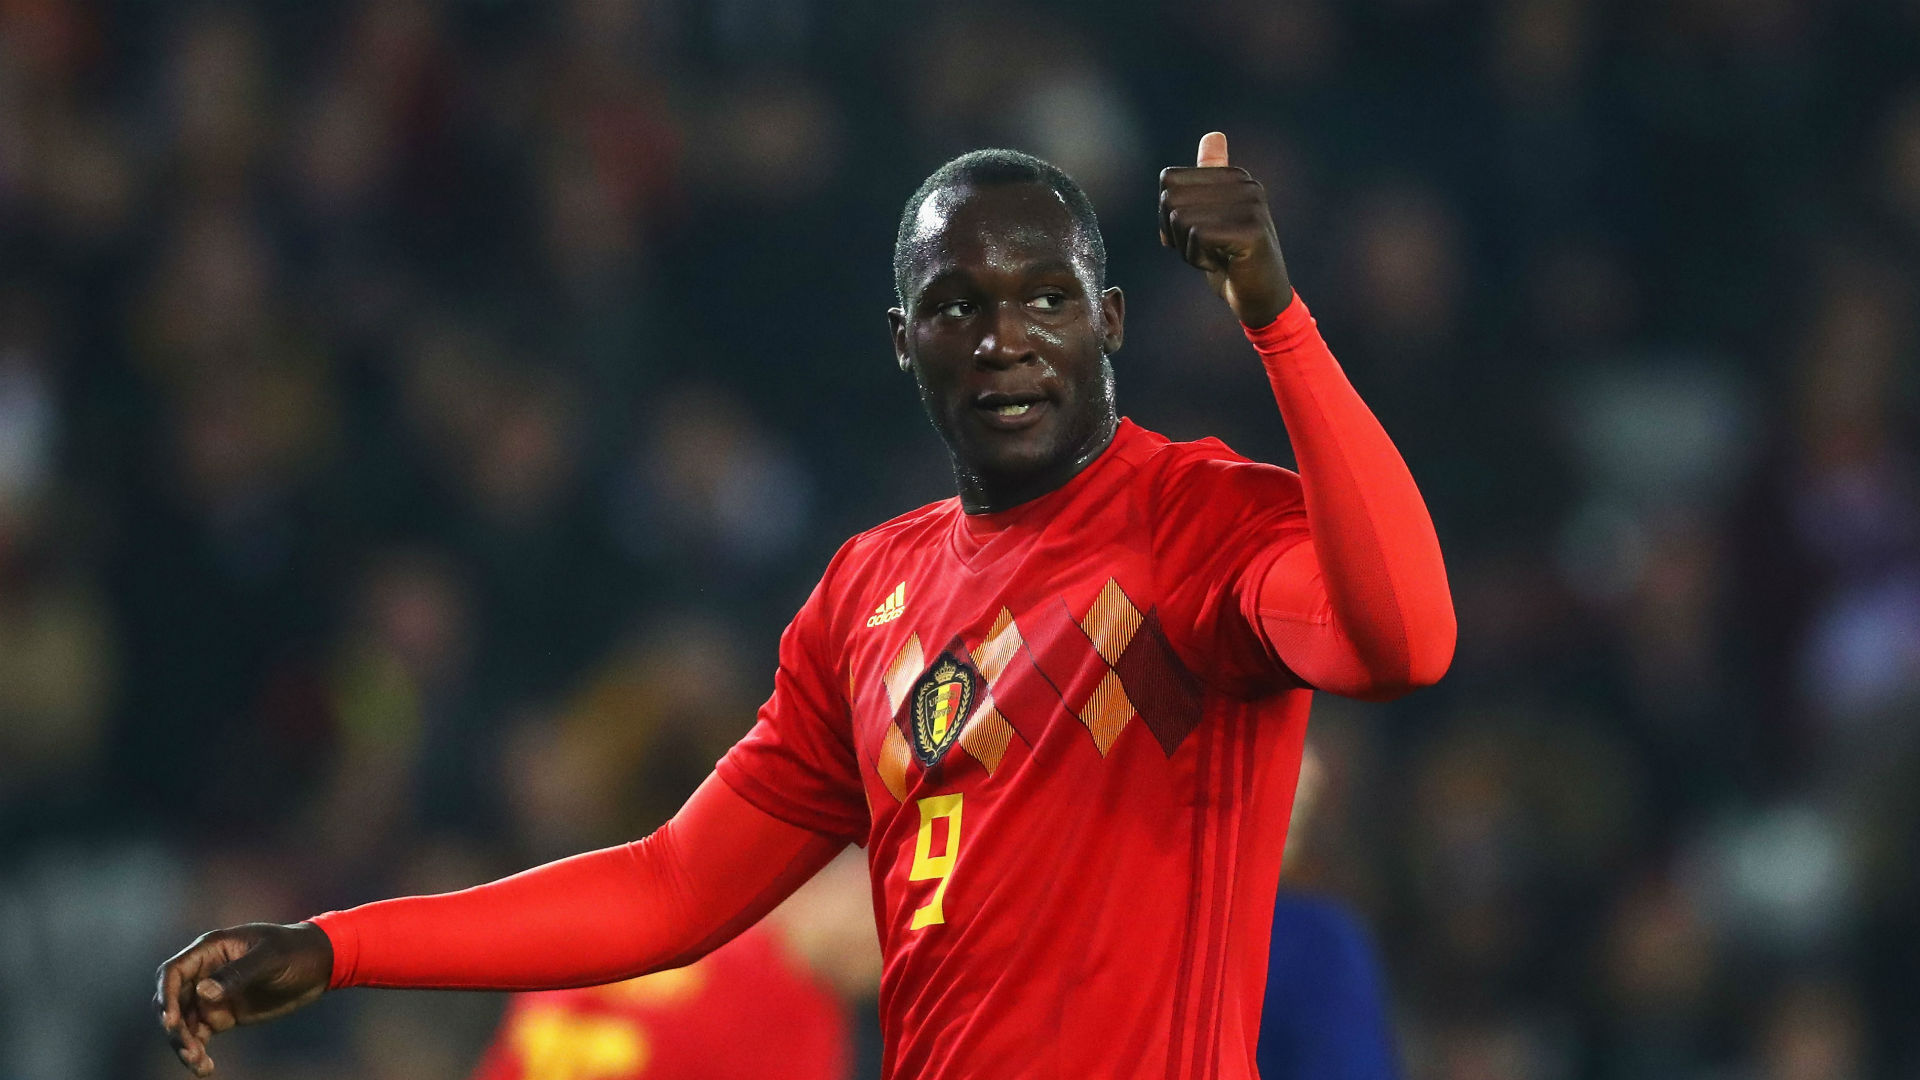 Watch moment Romelu Lukaku became Belgium's all-time top scorer